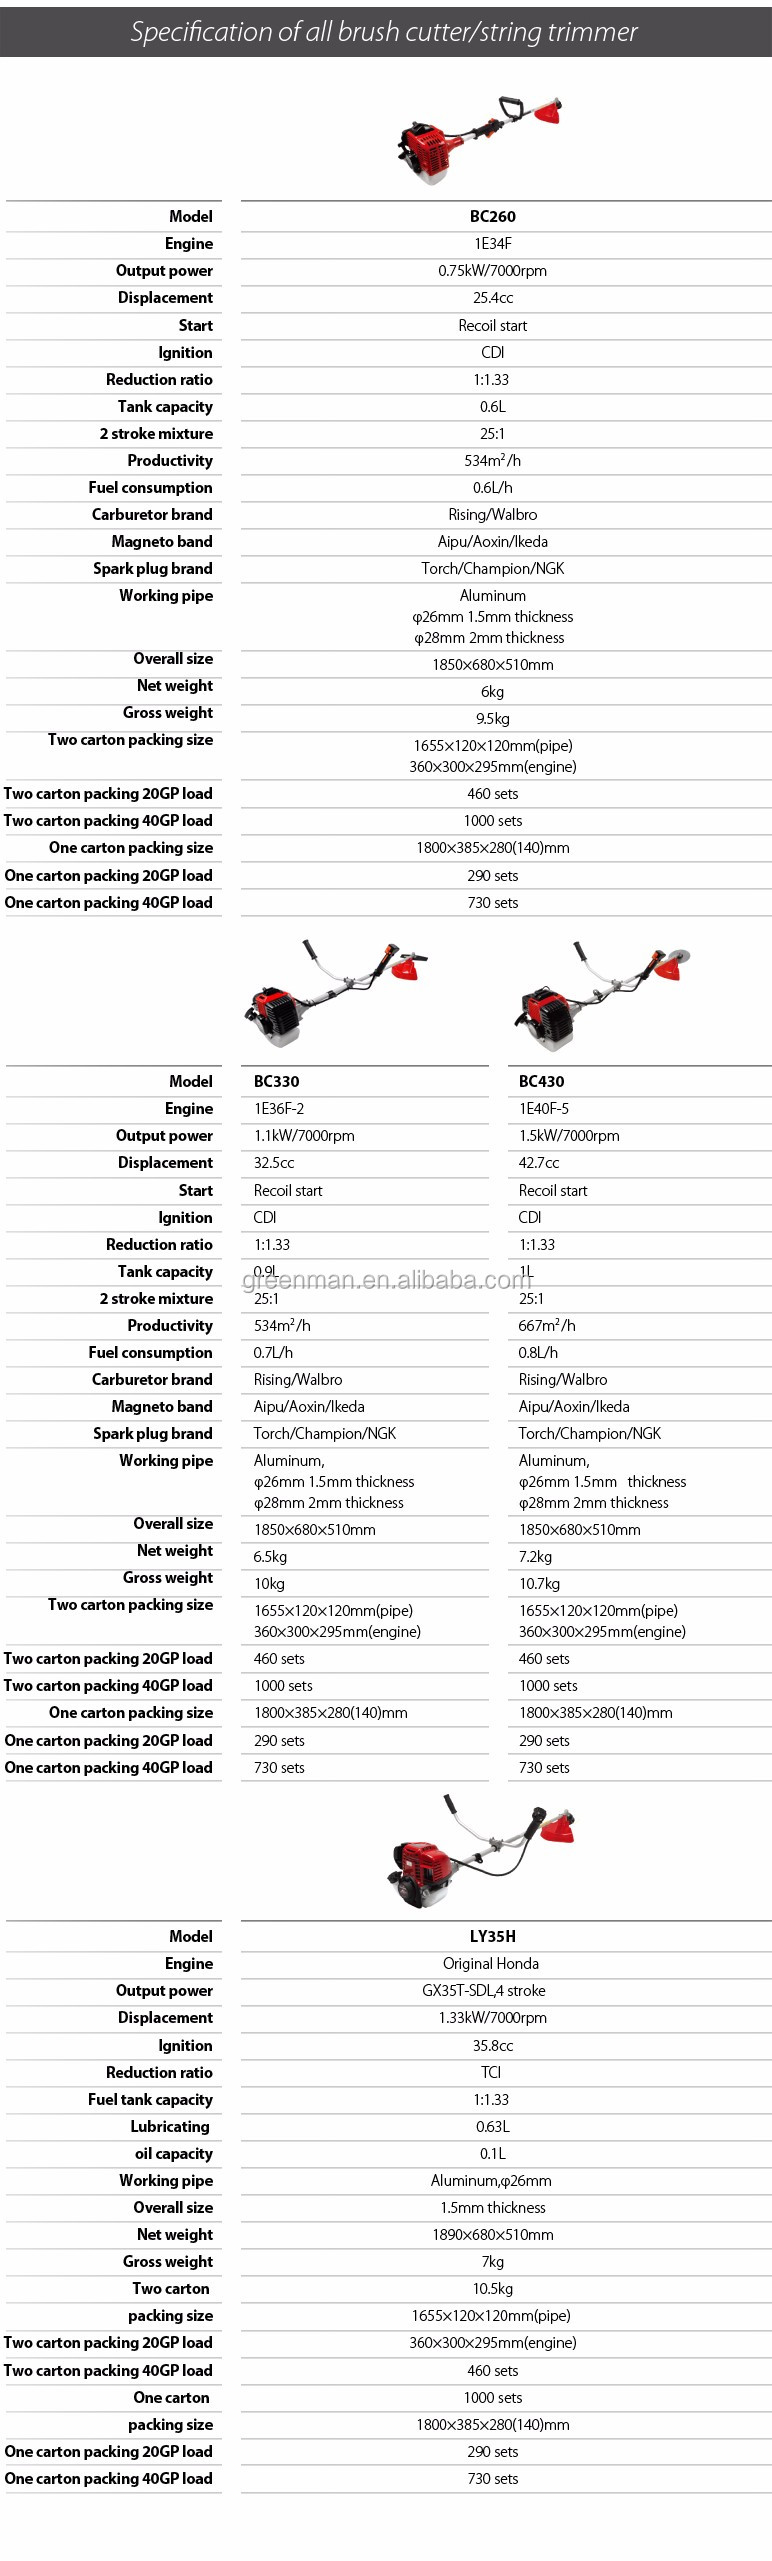 43cc 2 stroke heavy duty commercial use brush cutter manufactured more than 15 years